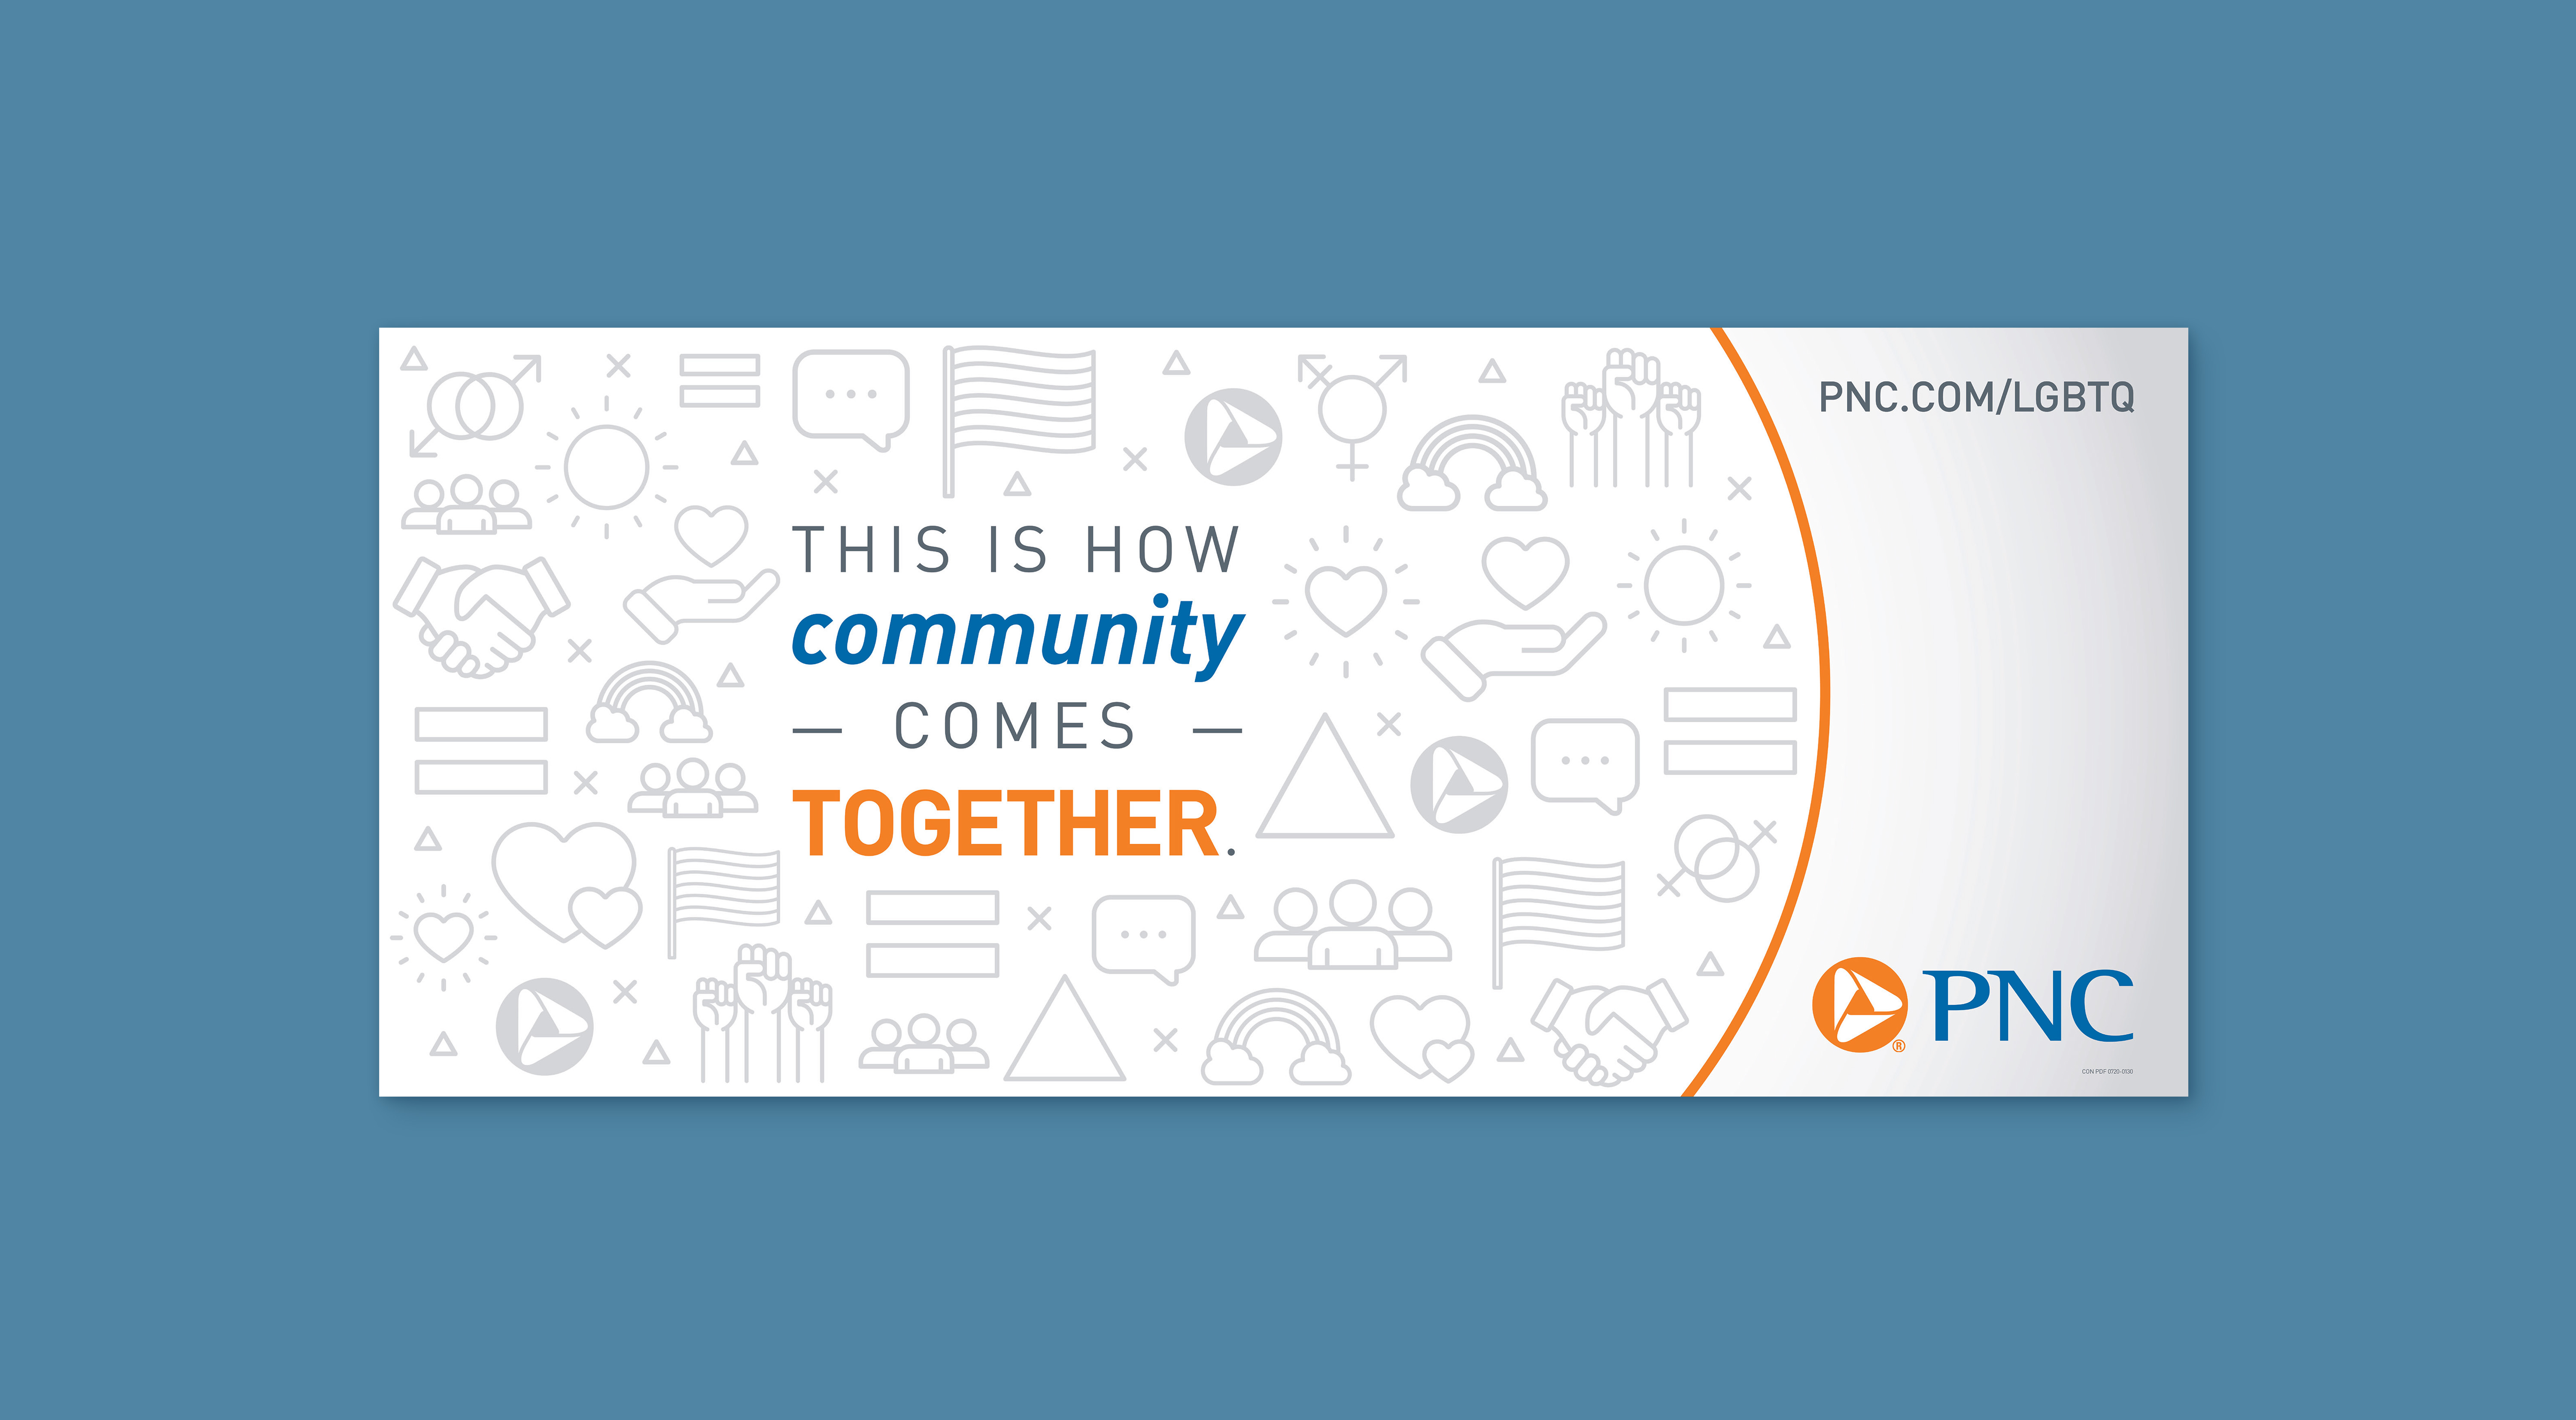 """A long, horizontal sign featuring a light gray gradient background. Toward the left side, there is gray, blue, and orange text reading """"This is how community comes together."""" Behind the copy, there is a circular shape made up of various gray icons - all representative of the LGBTQ community and its history, as well as the PNC logo. The bottom righthand corner displays a URL reading """"pnc.com/LGBTQ"""" and the PNC logo."""